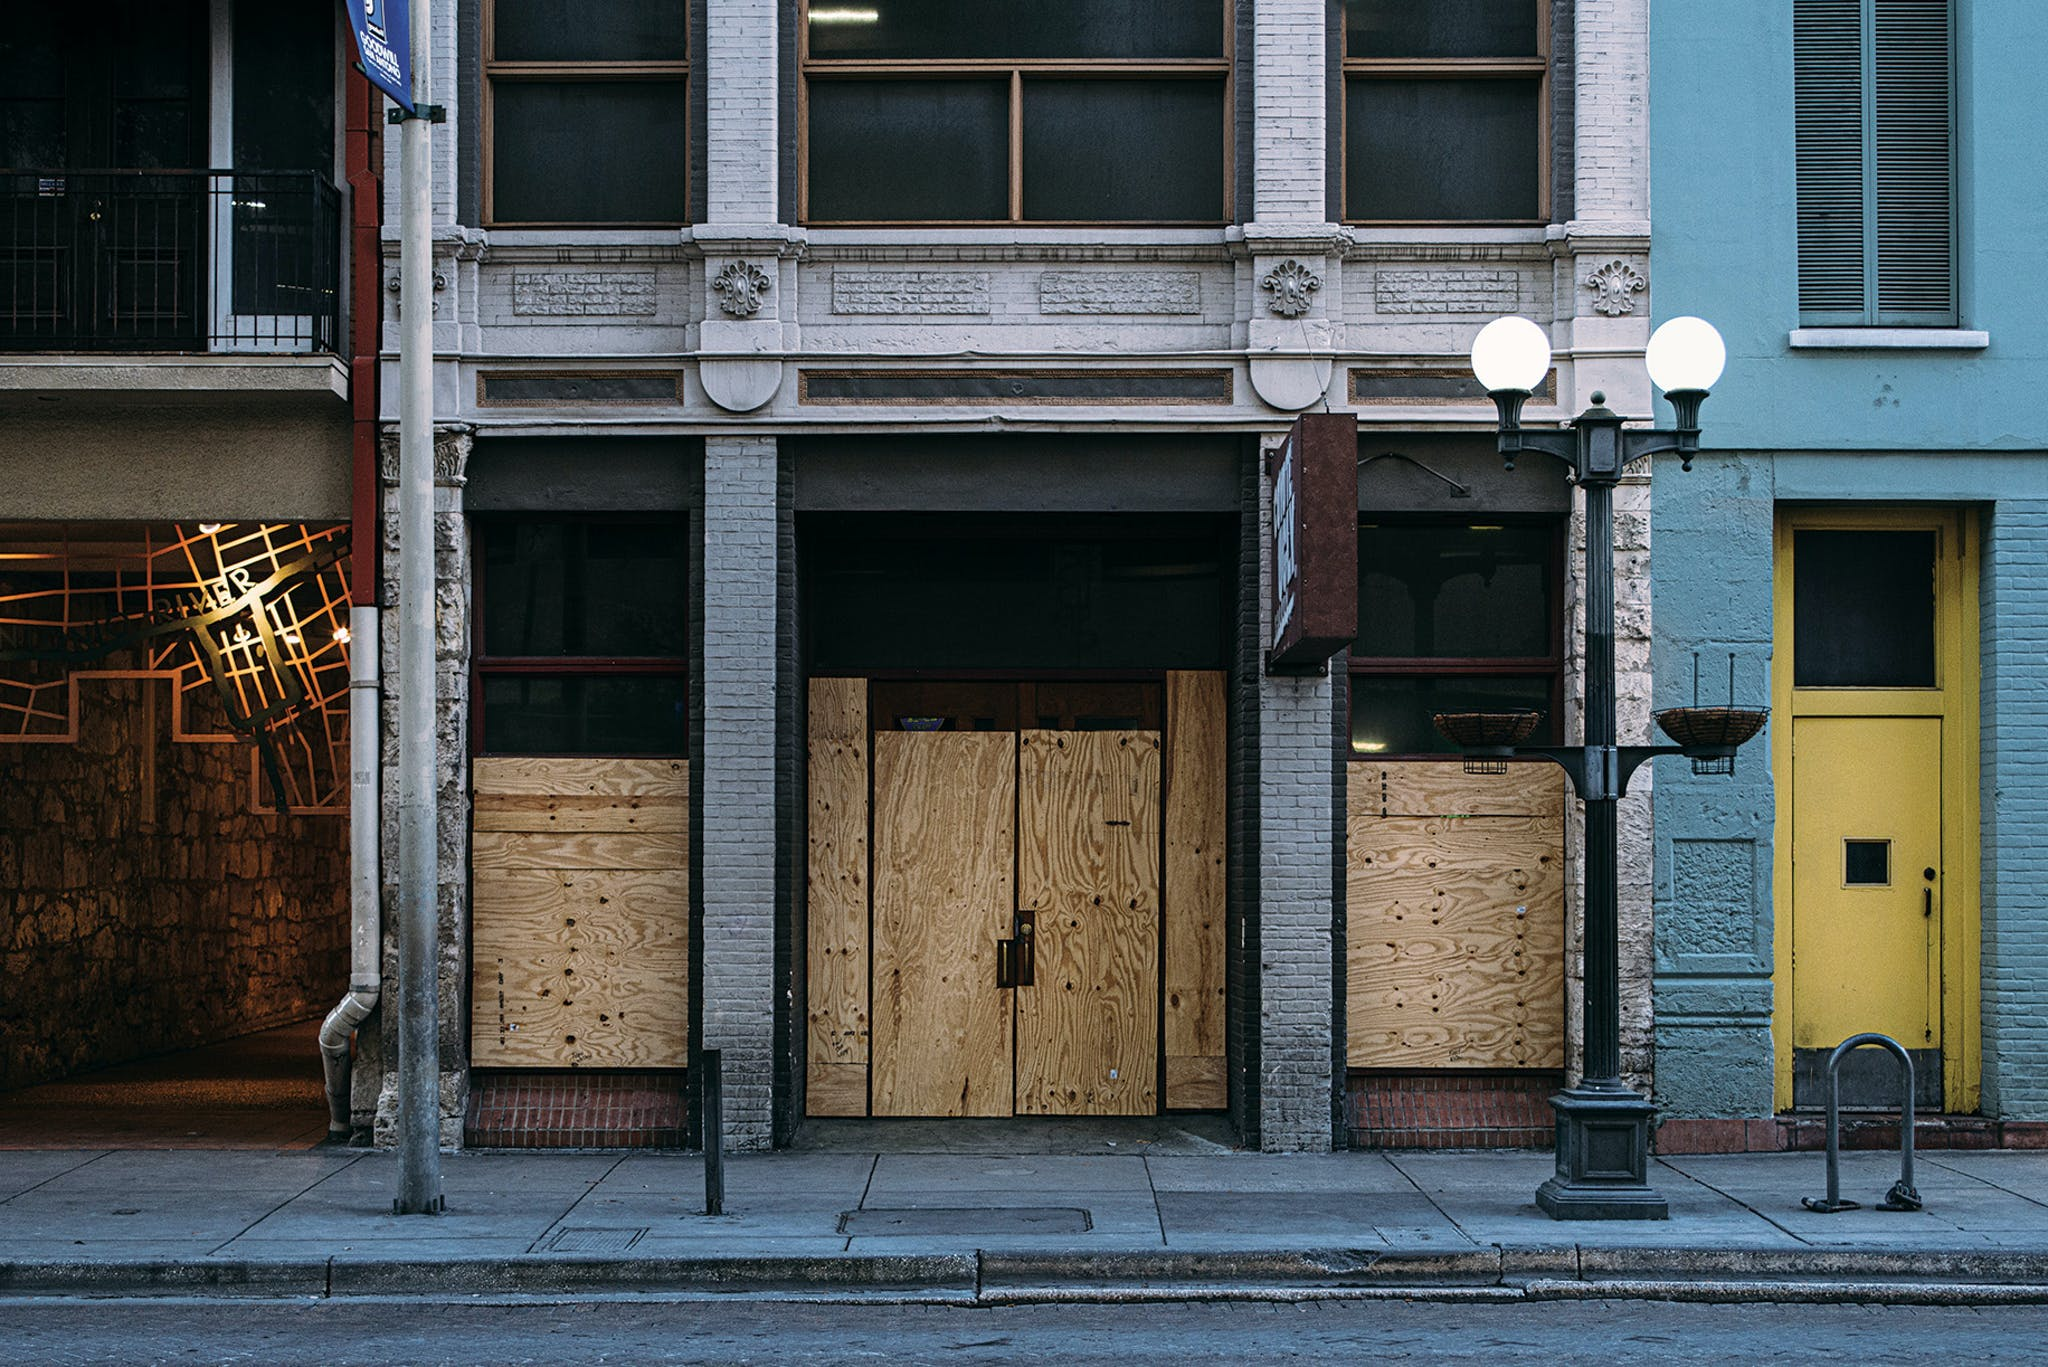 In downtown San Antonio, as in other cities, many shuttered businesses took precautions to prevent vandalism.